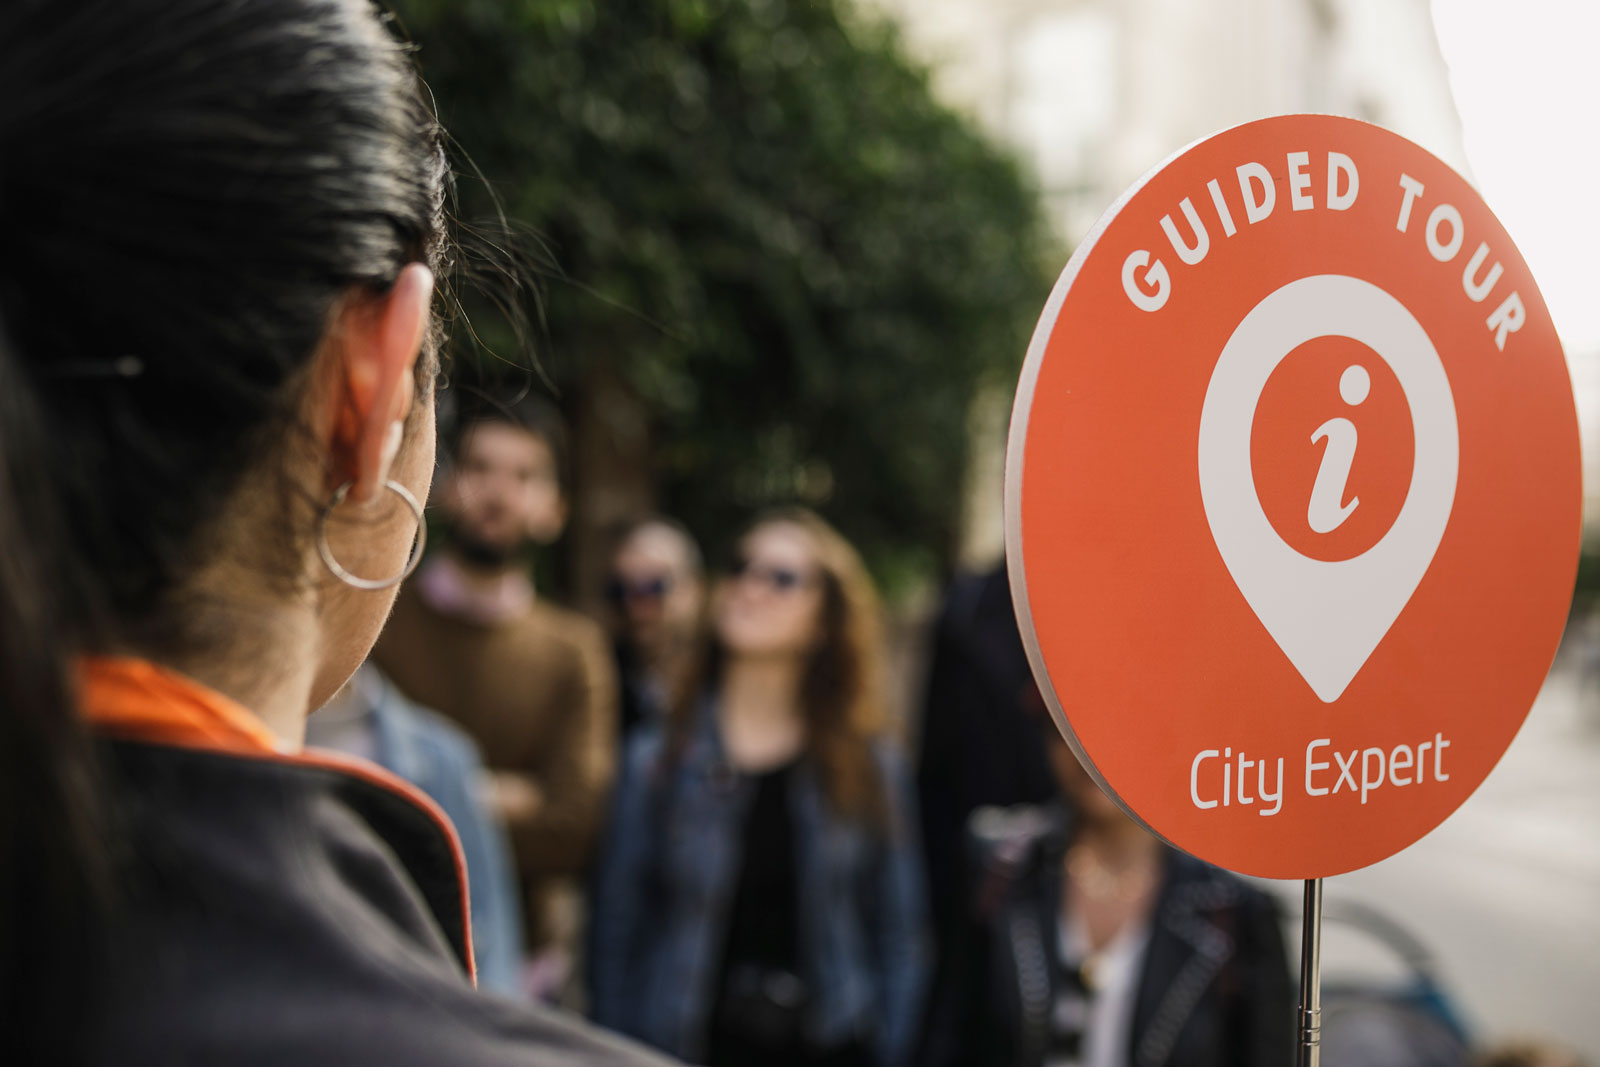 city expert guided tour